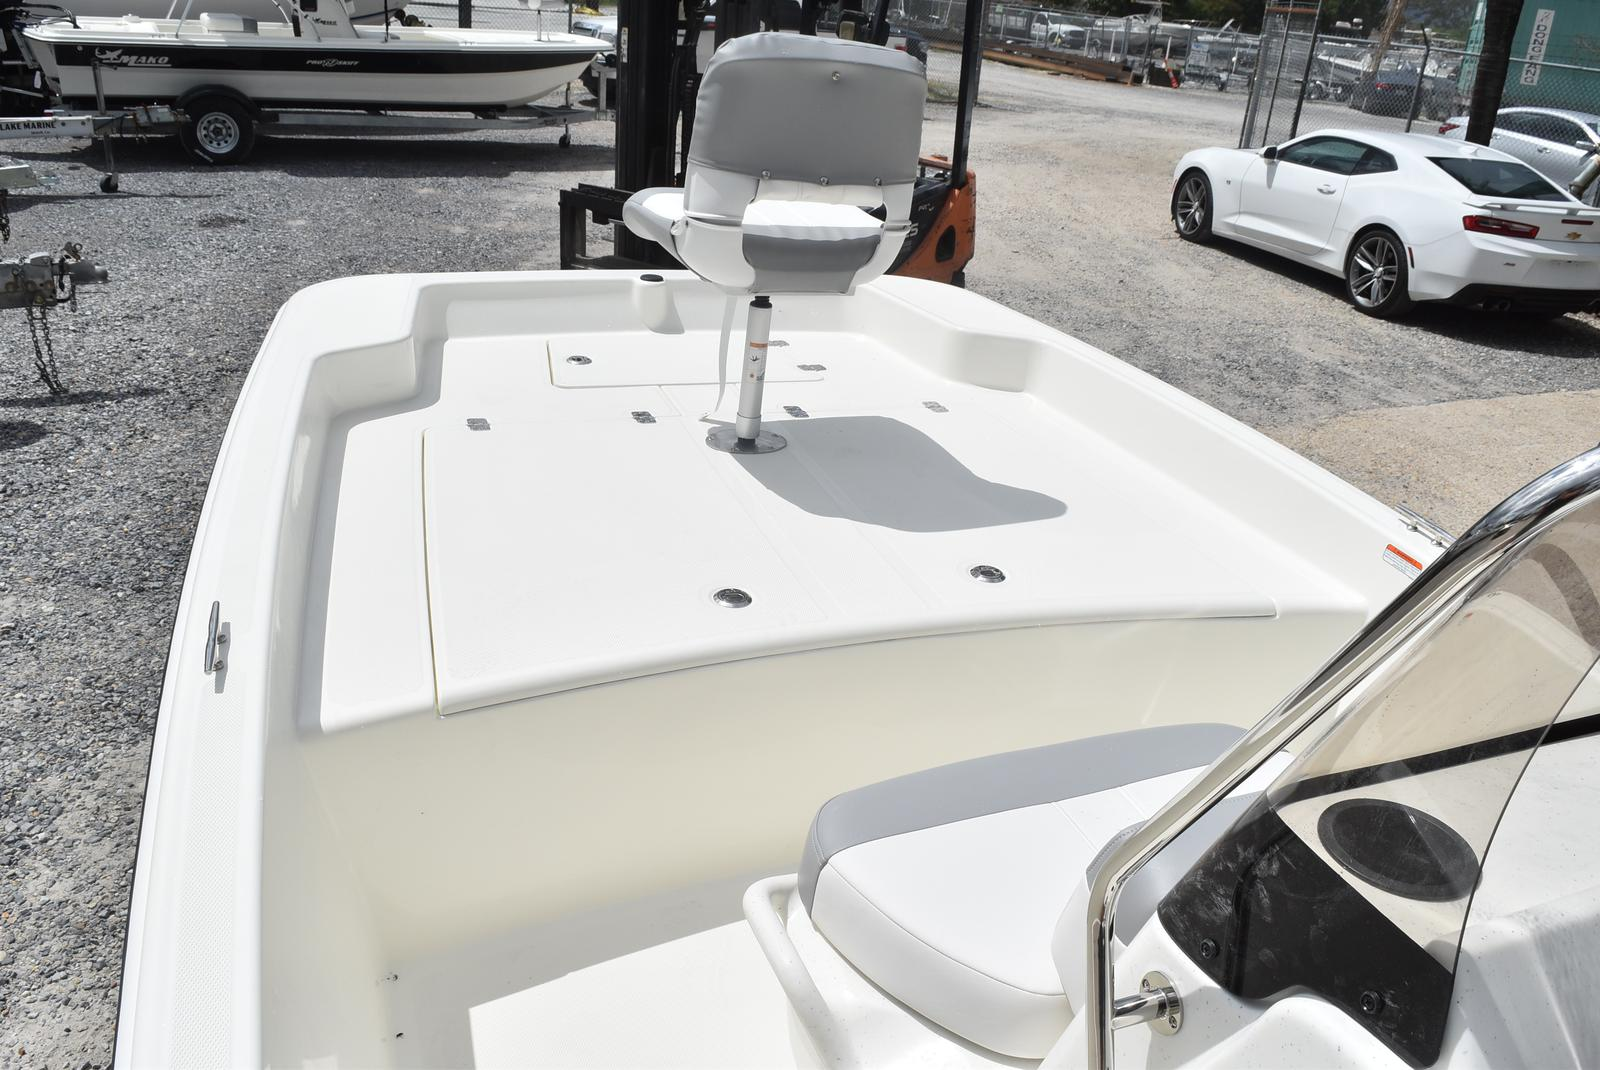 2020 Mako boat for sale, model of the boat is Pro Skiff 17, 75 ELPT & Image # 446 of 702